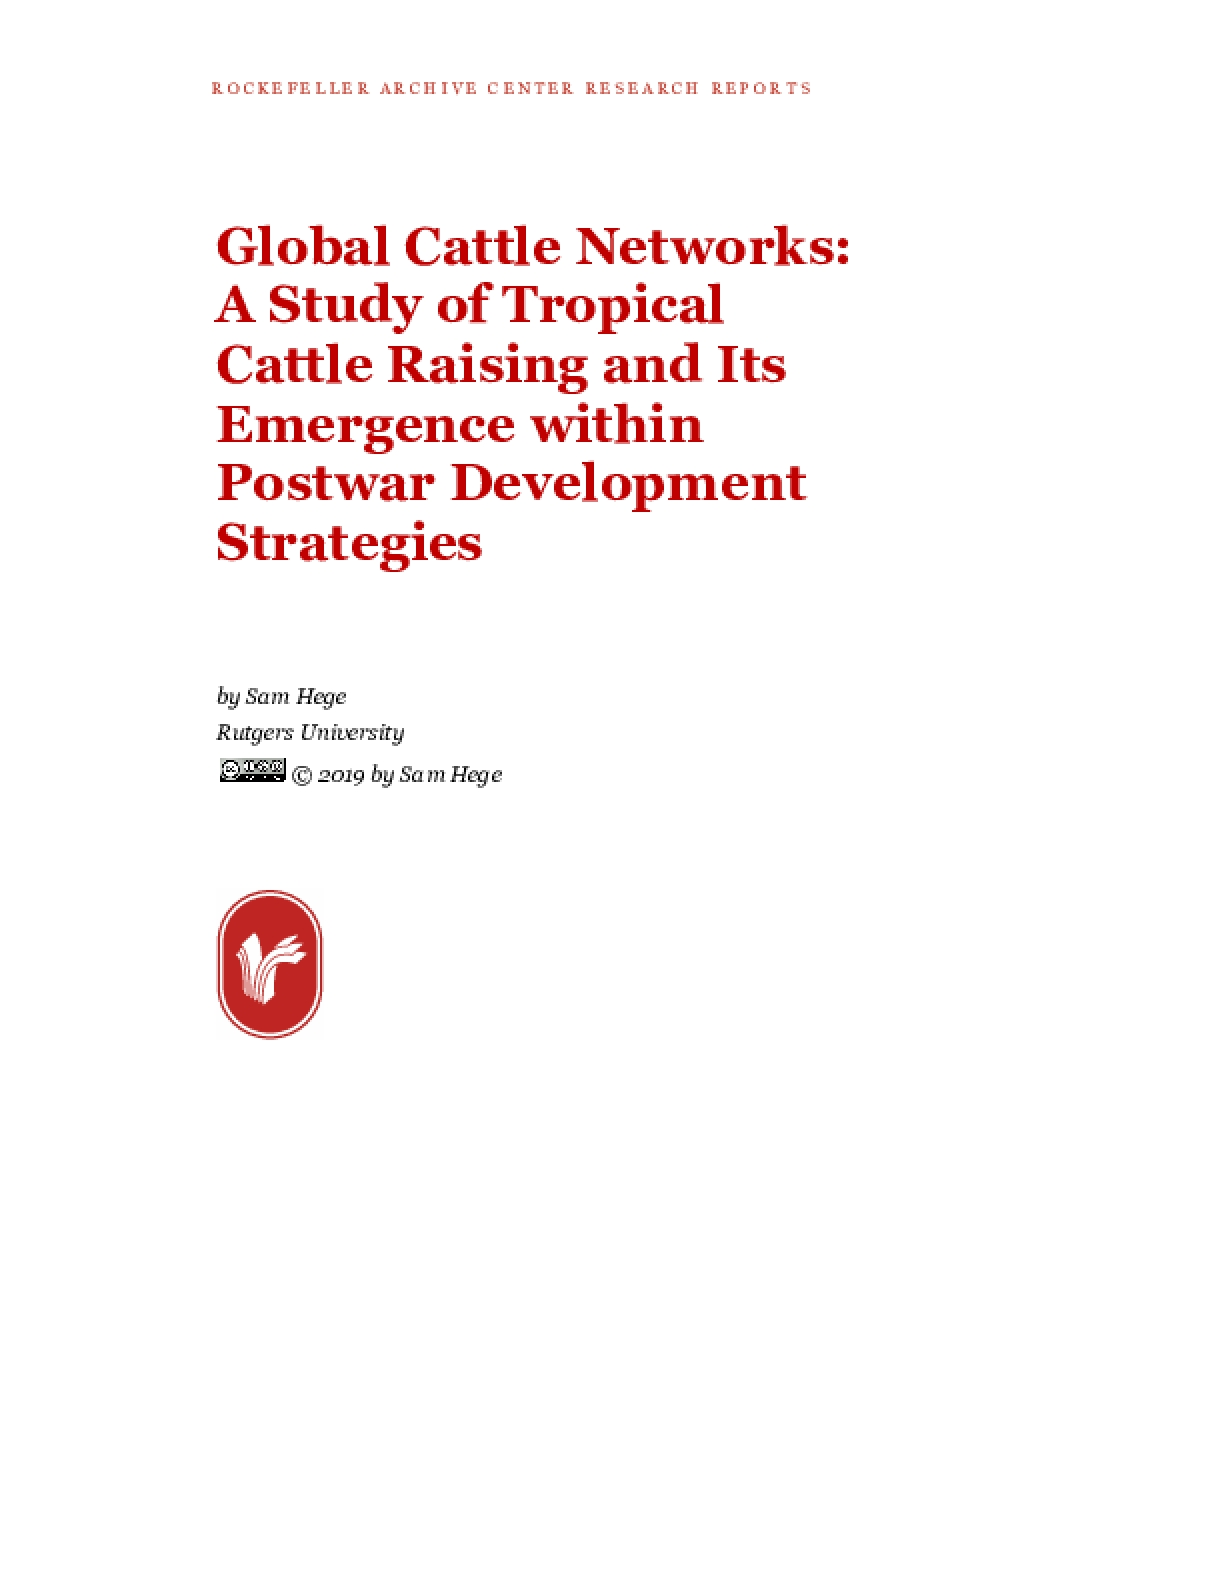 Global Cattle Networks: A Study of Tropical Cattle Raising and Its Emergence within Postwar Development Strategies